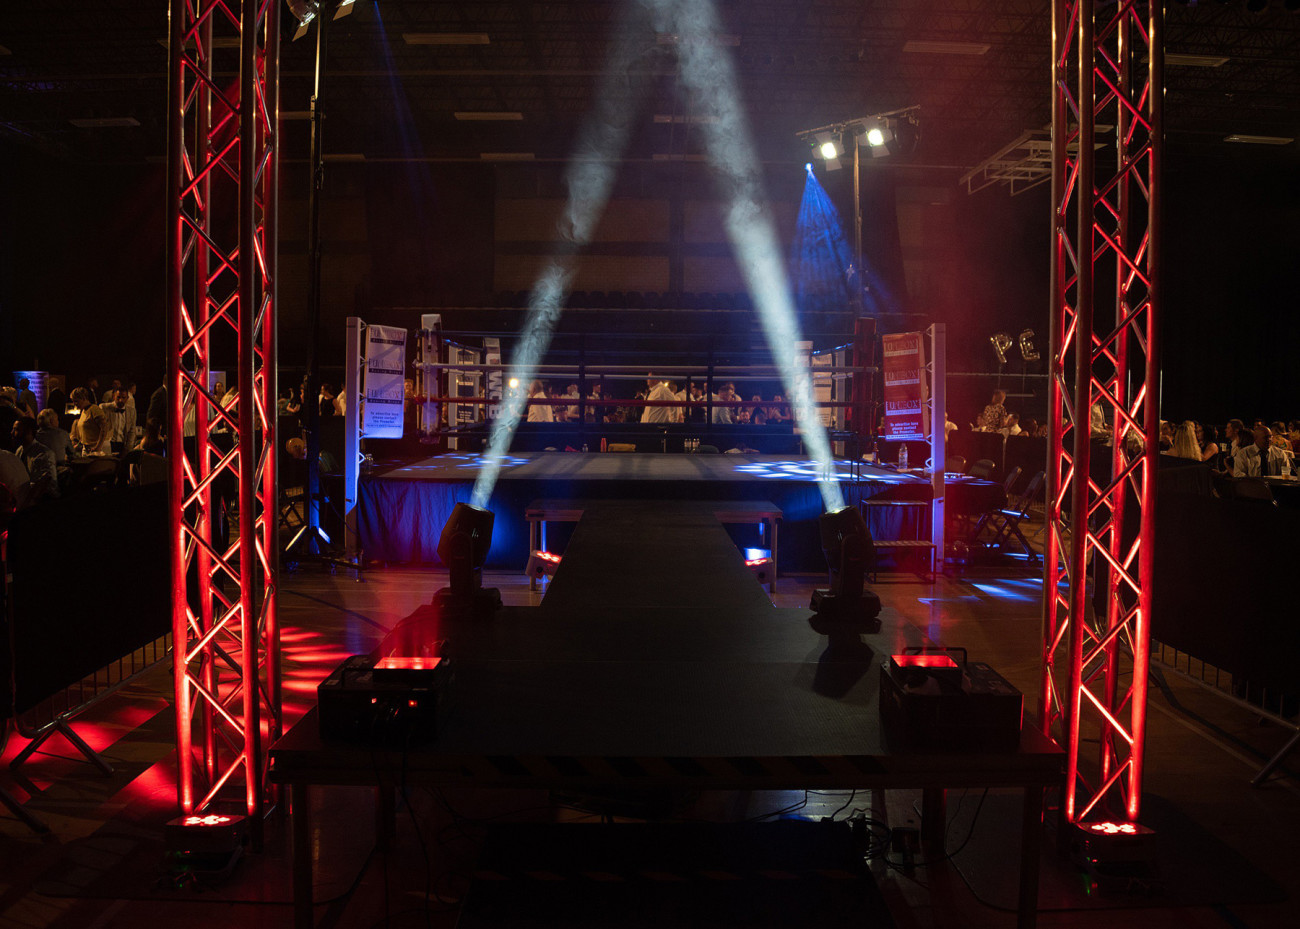 UWCB Ring Side View